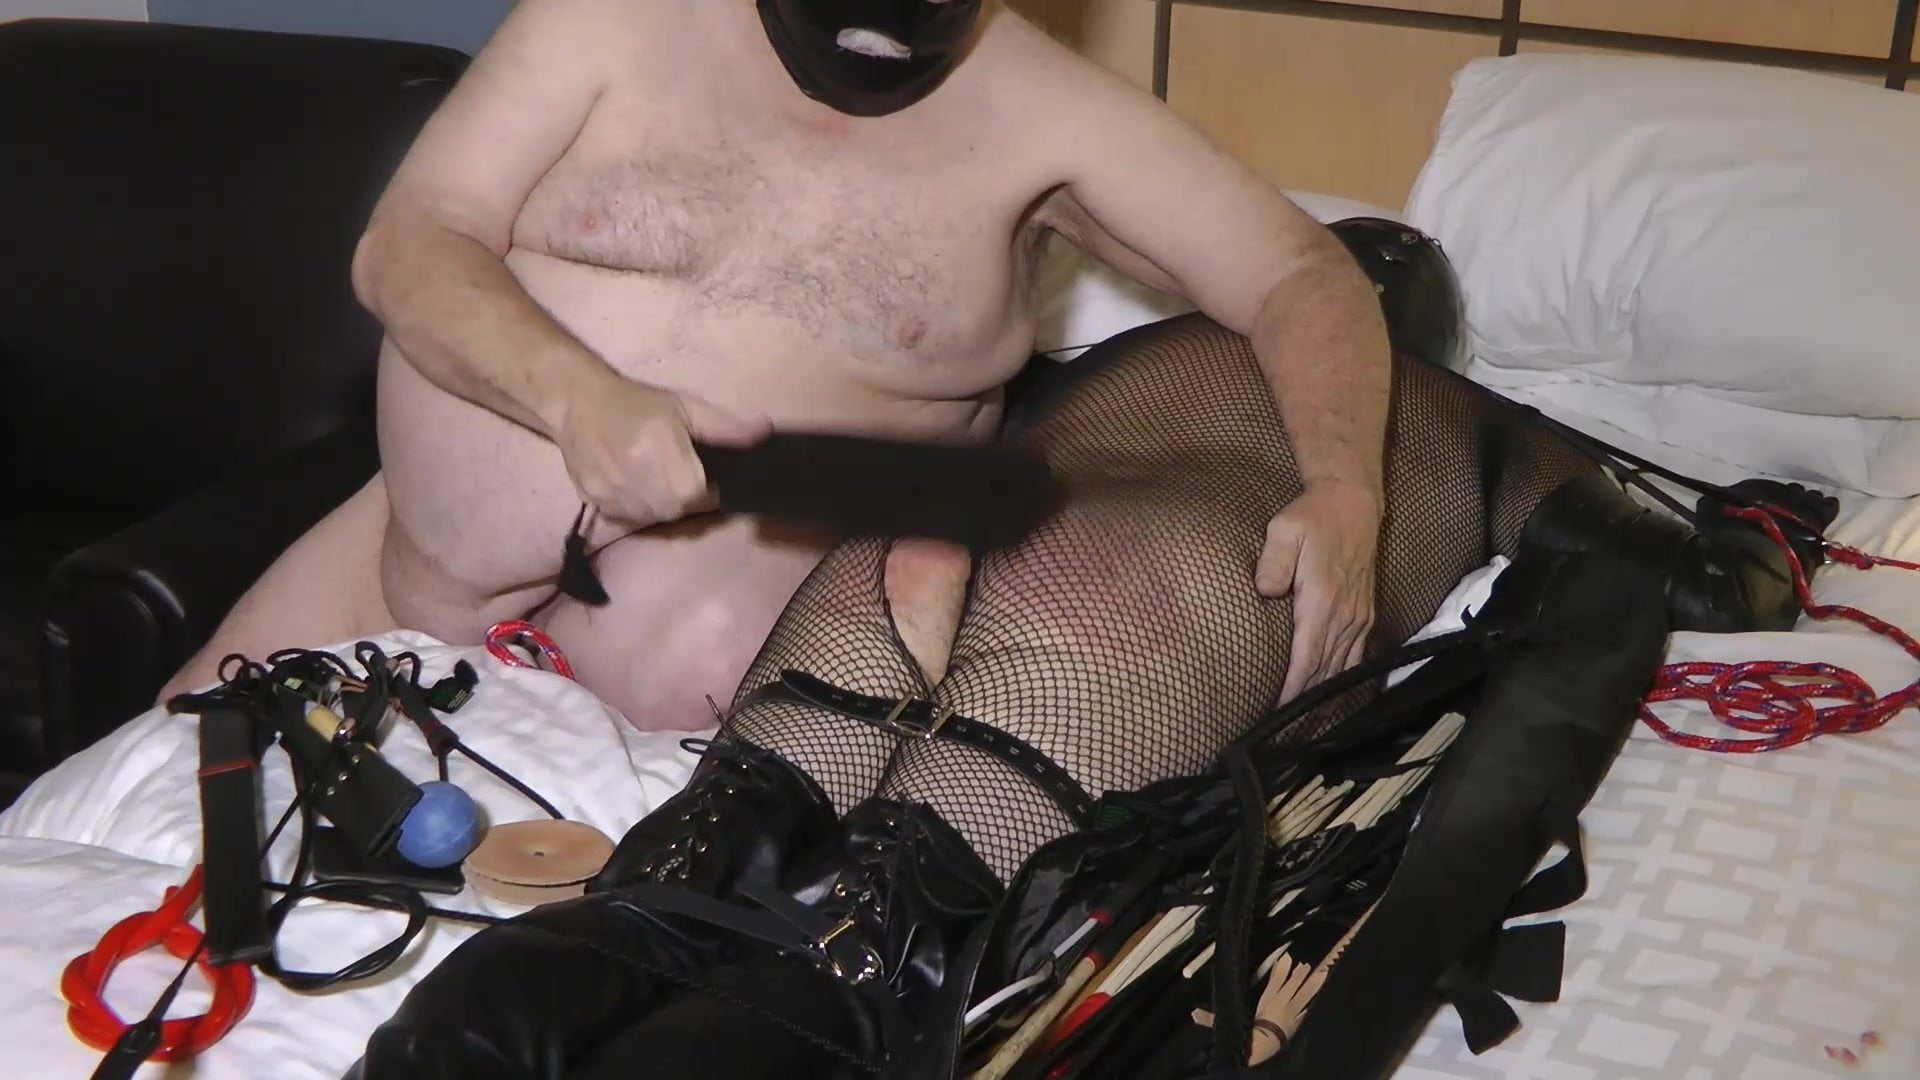 05-Sep-2019 The sissy boot faggot 1st session